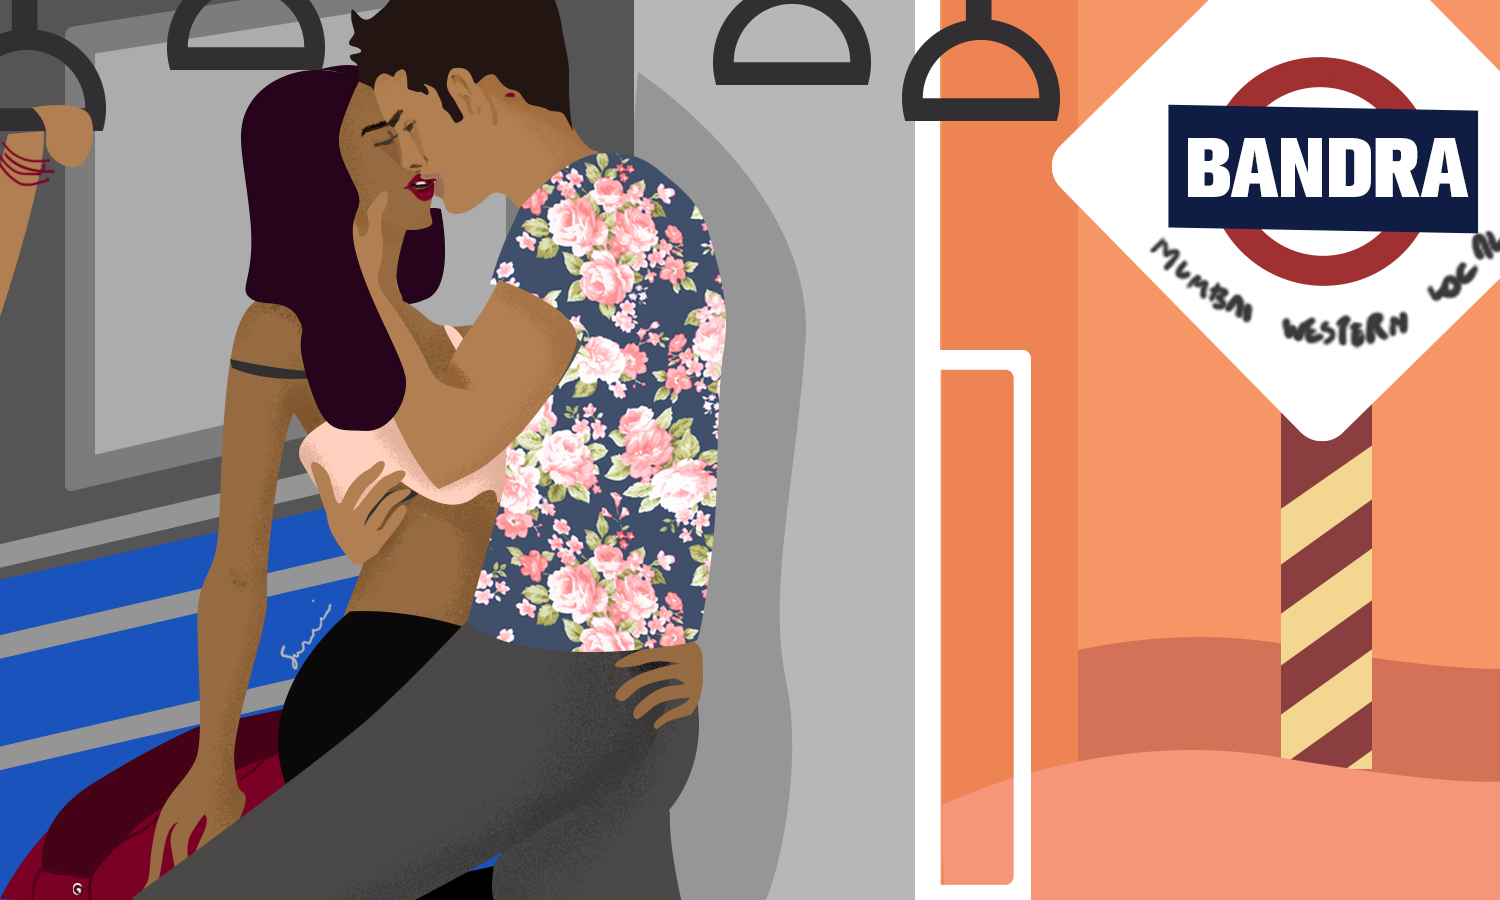 How to have sex in public without getting caught